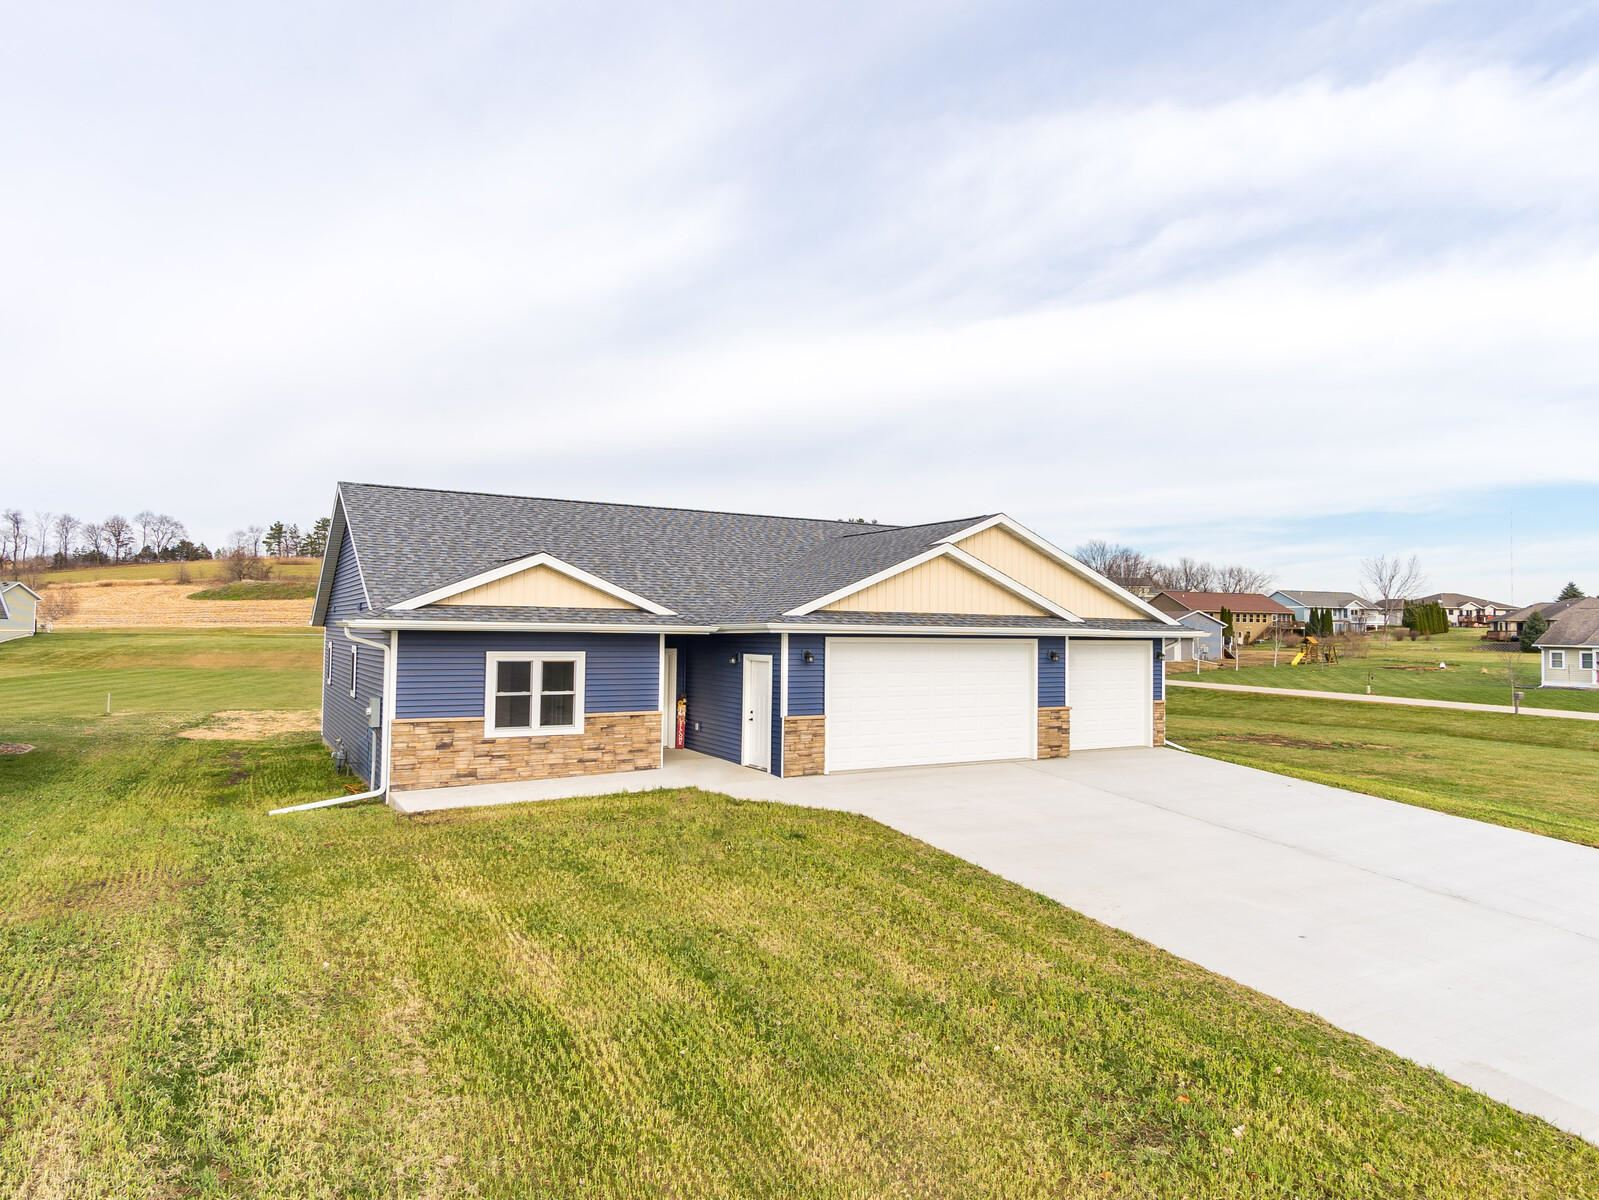 21572 Somerset Downs Ln, Galesville, WI 54630 - MLS#: 1719211